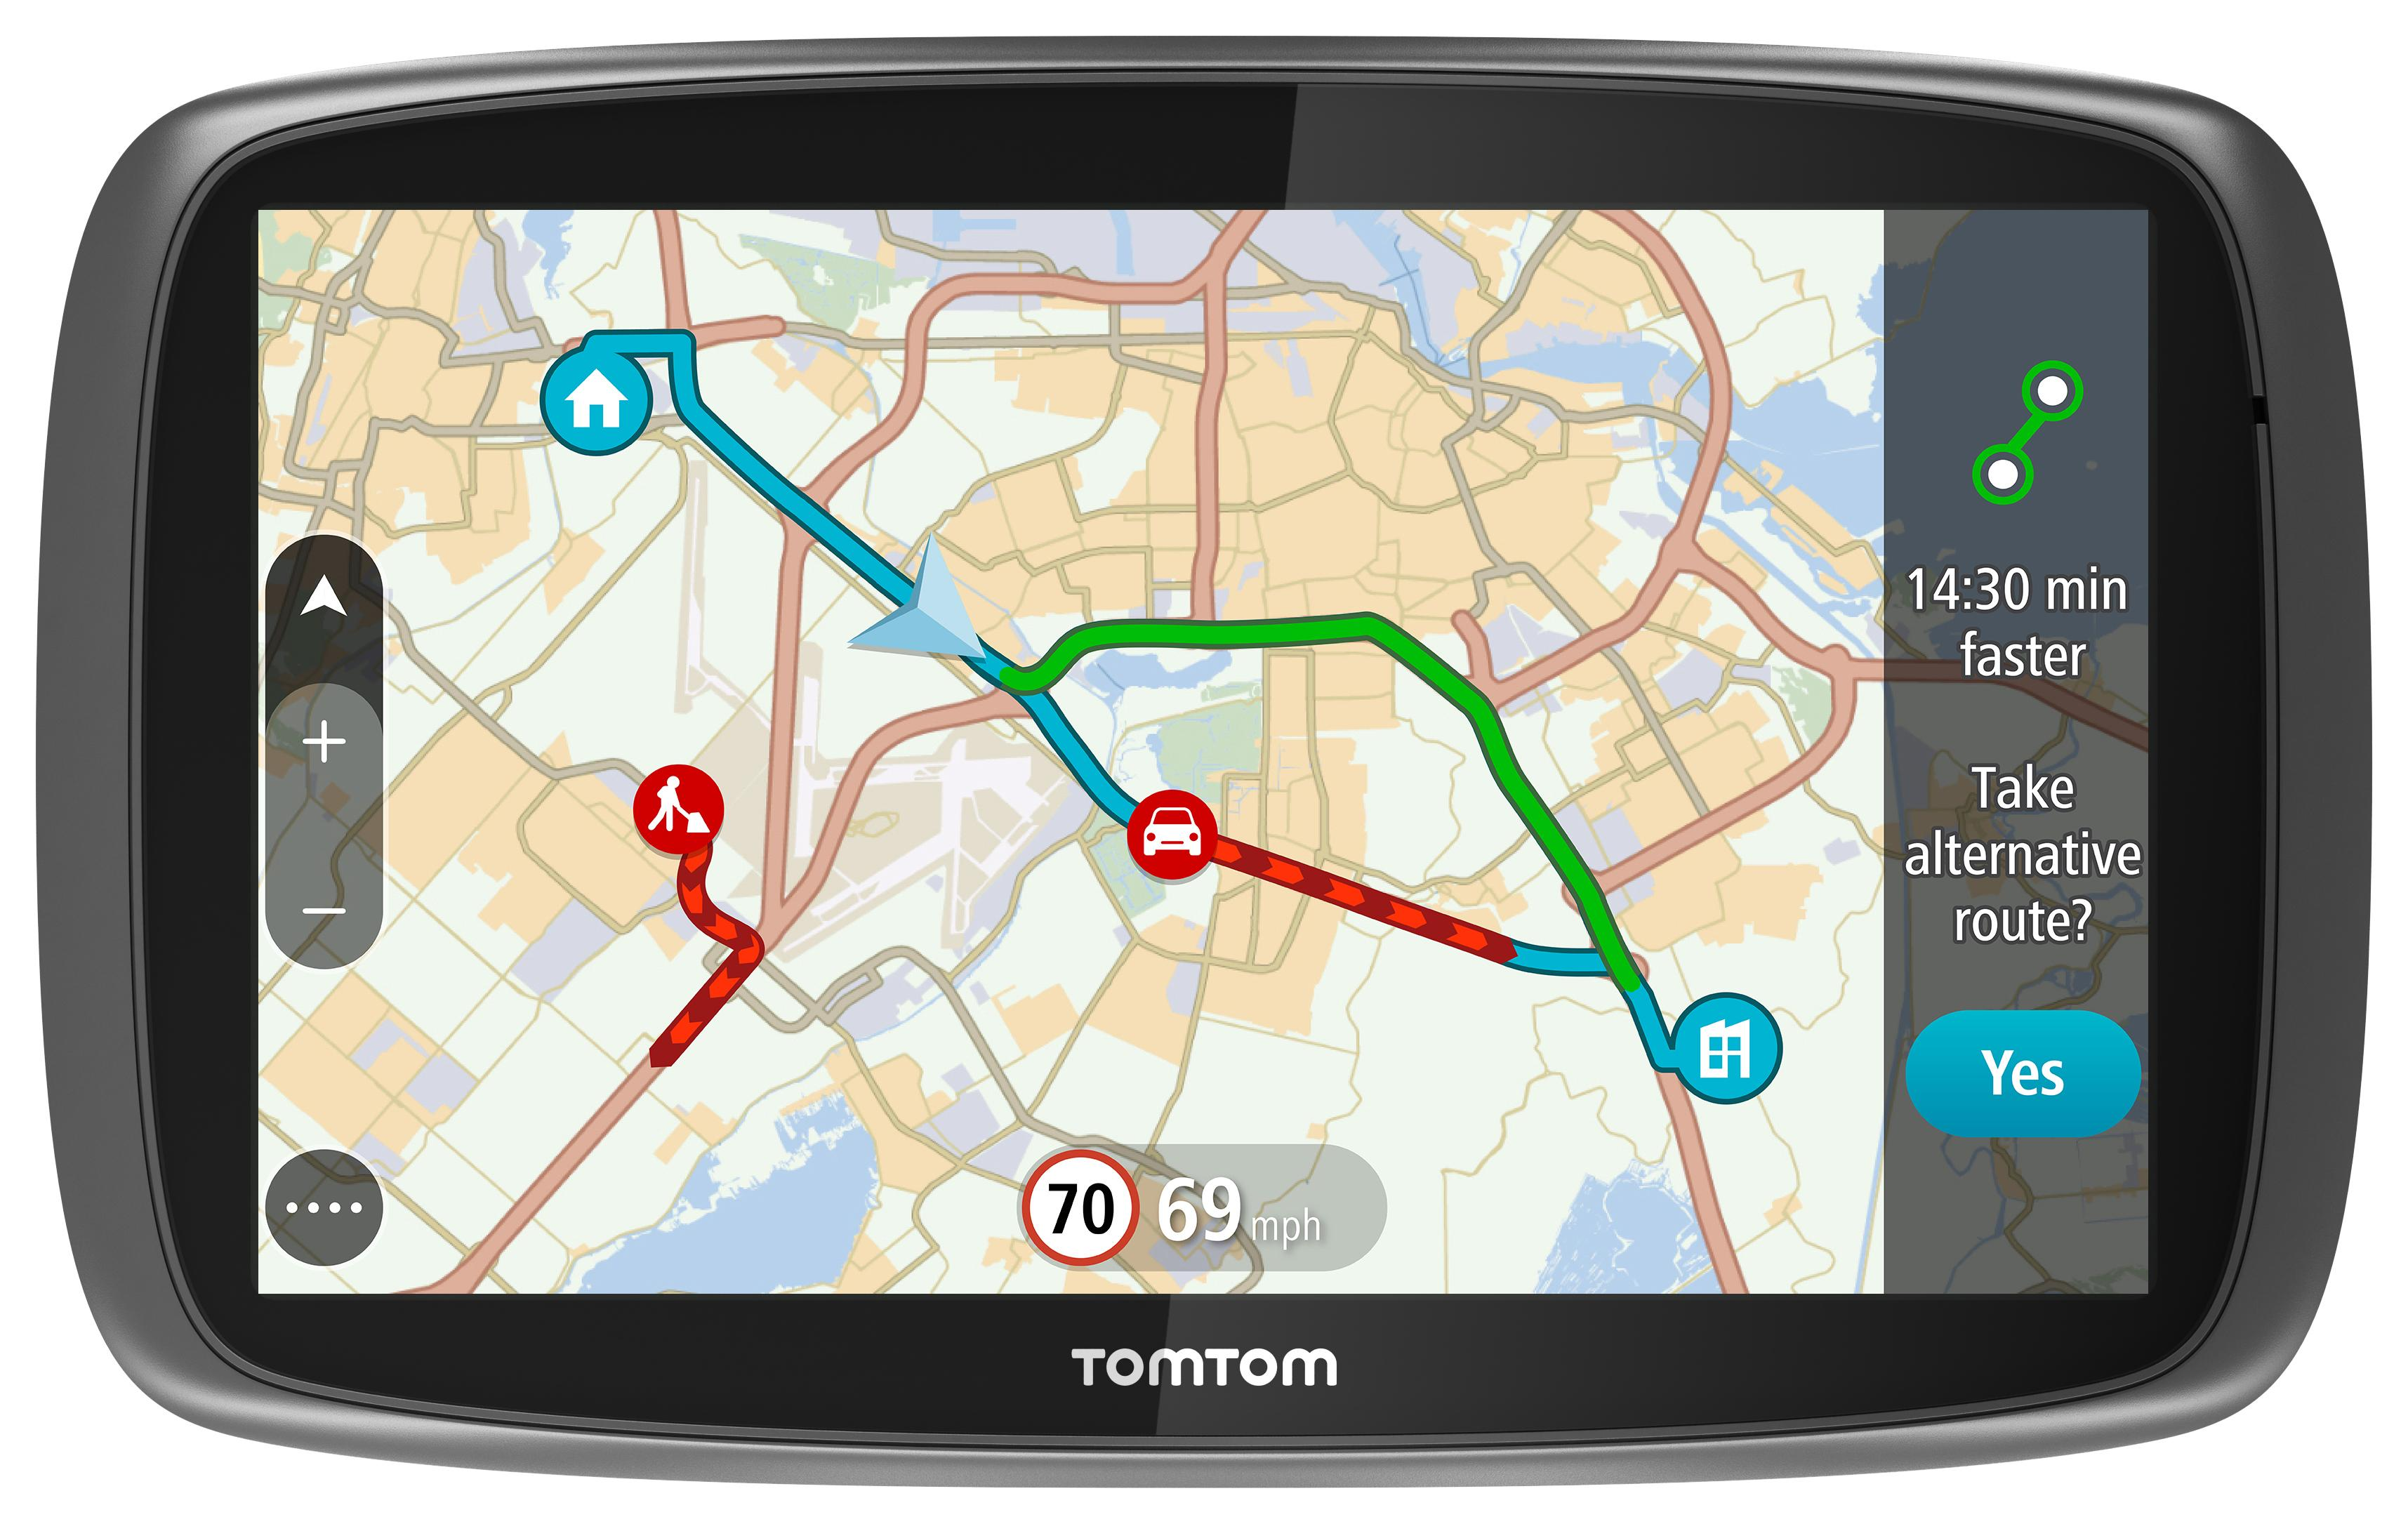 tomtom go 5100 5 car sat nav gps mydrive lifetime traffic world 3d maps updates ebay. Black Bedroom Furniture Sets. Home Design Ideas